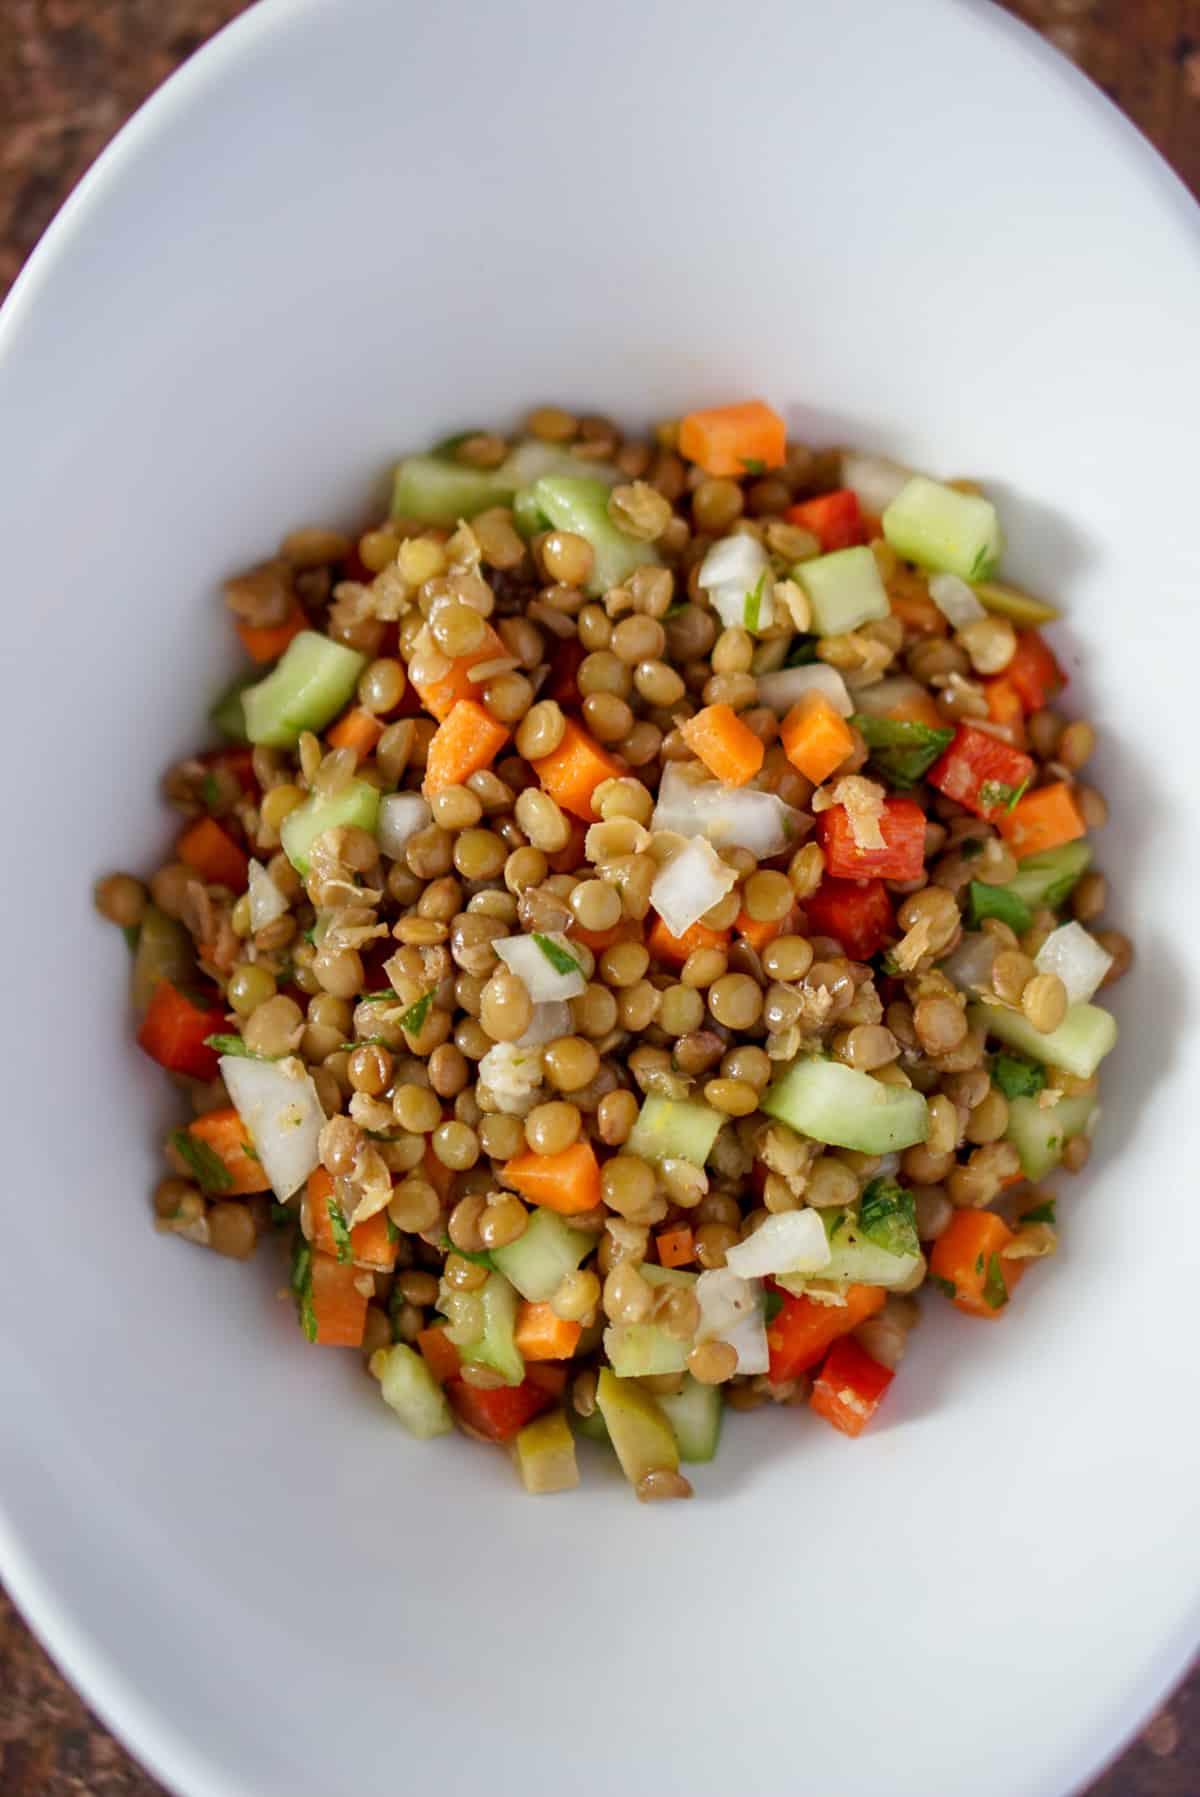 Overhead shot of lentil salad in a white bowl, a popular vegetarian tapas recipe.